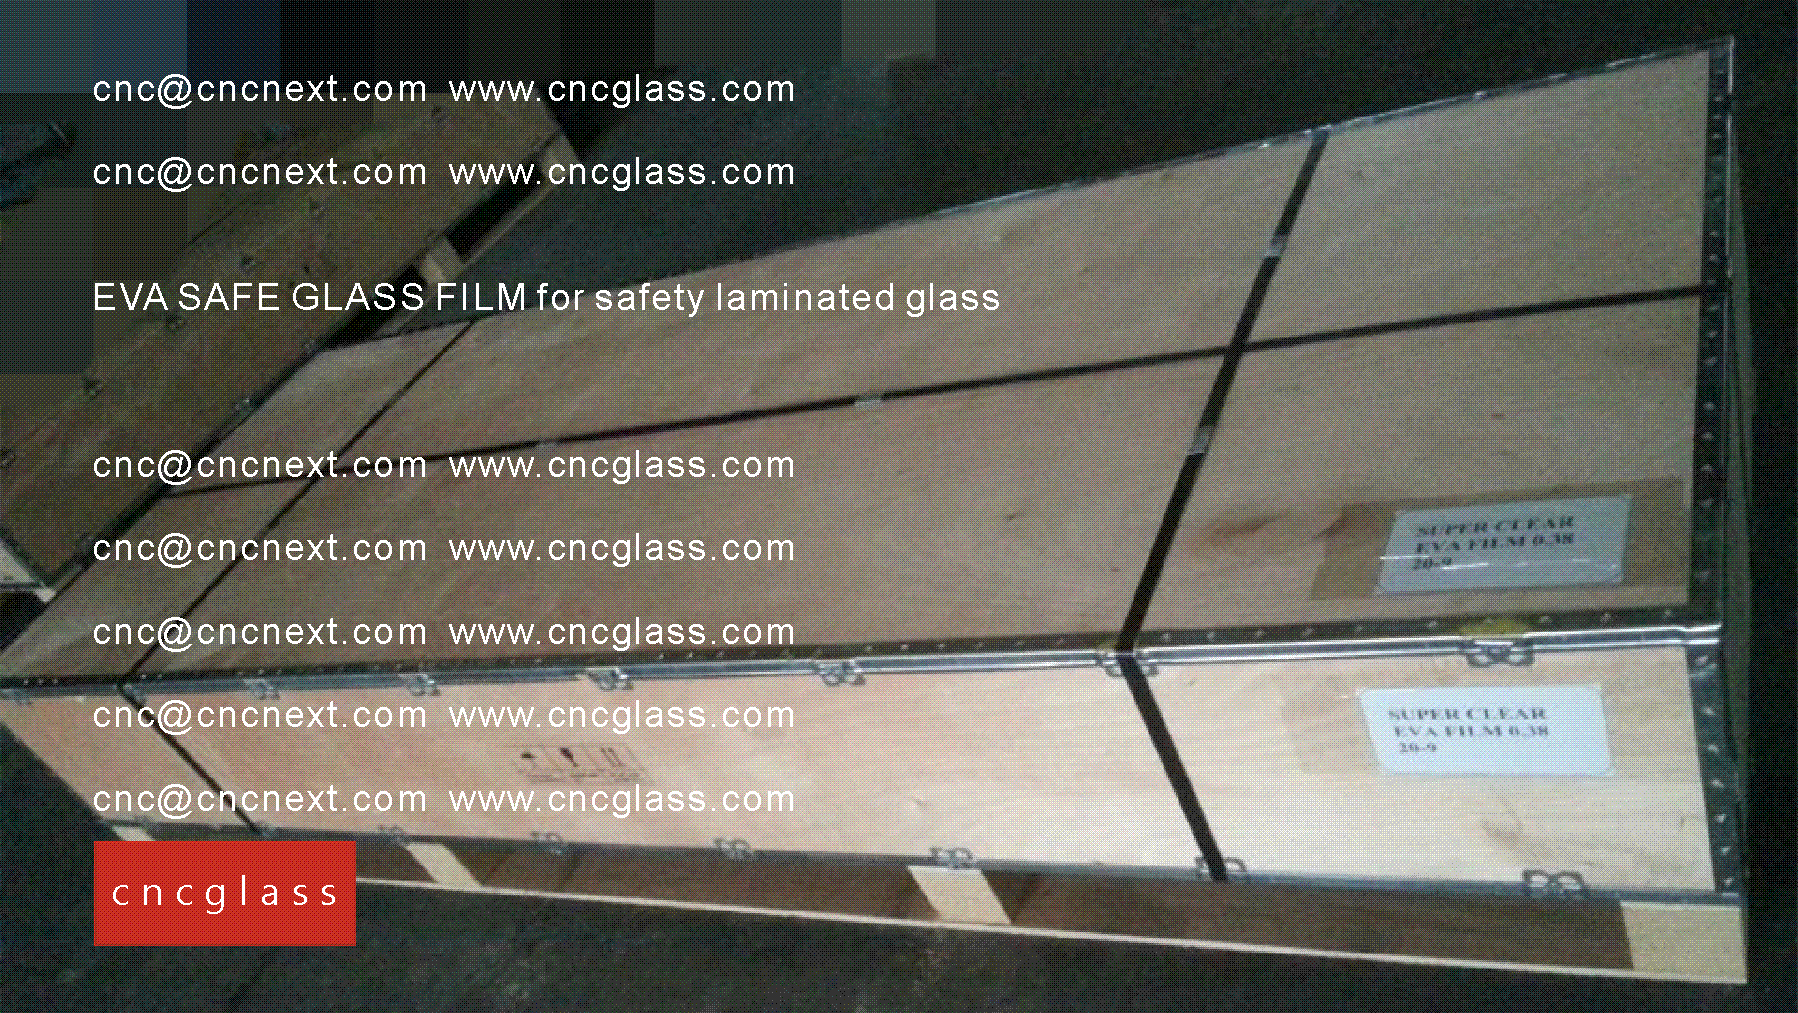 008 EVA SAFE GLASS FILM LOADING CONTAINER (SAFETY LAMINATED GLASS)